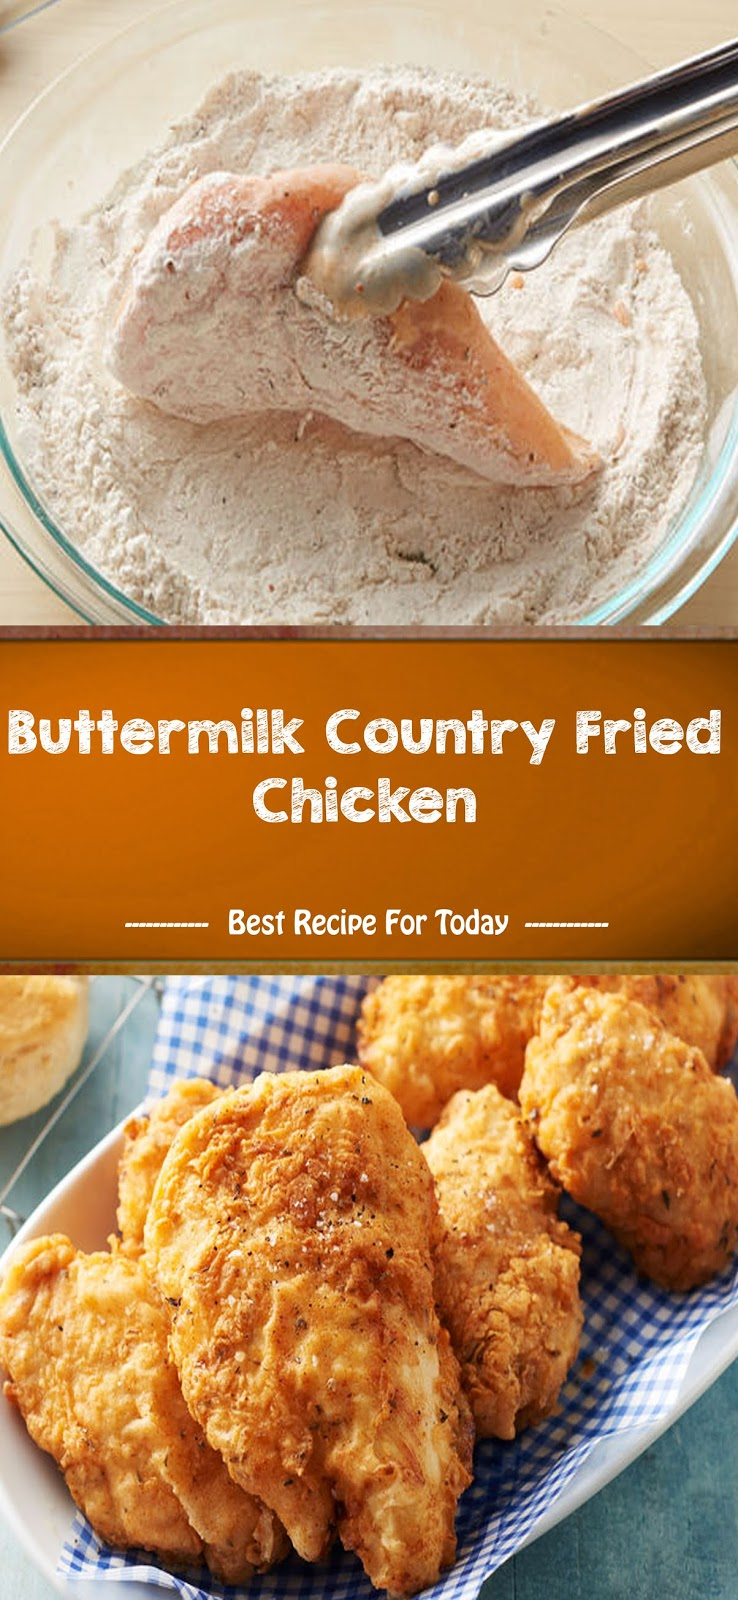 Buttermilk Country Fried Chicken Best Recipe 005 Country Fried Chicken Fried Chicken Recipes Chicken Recipes